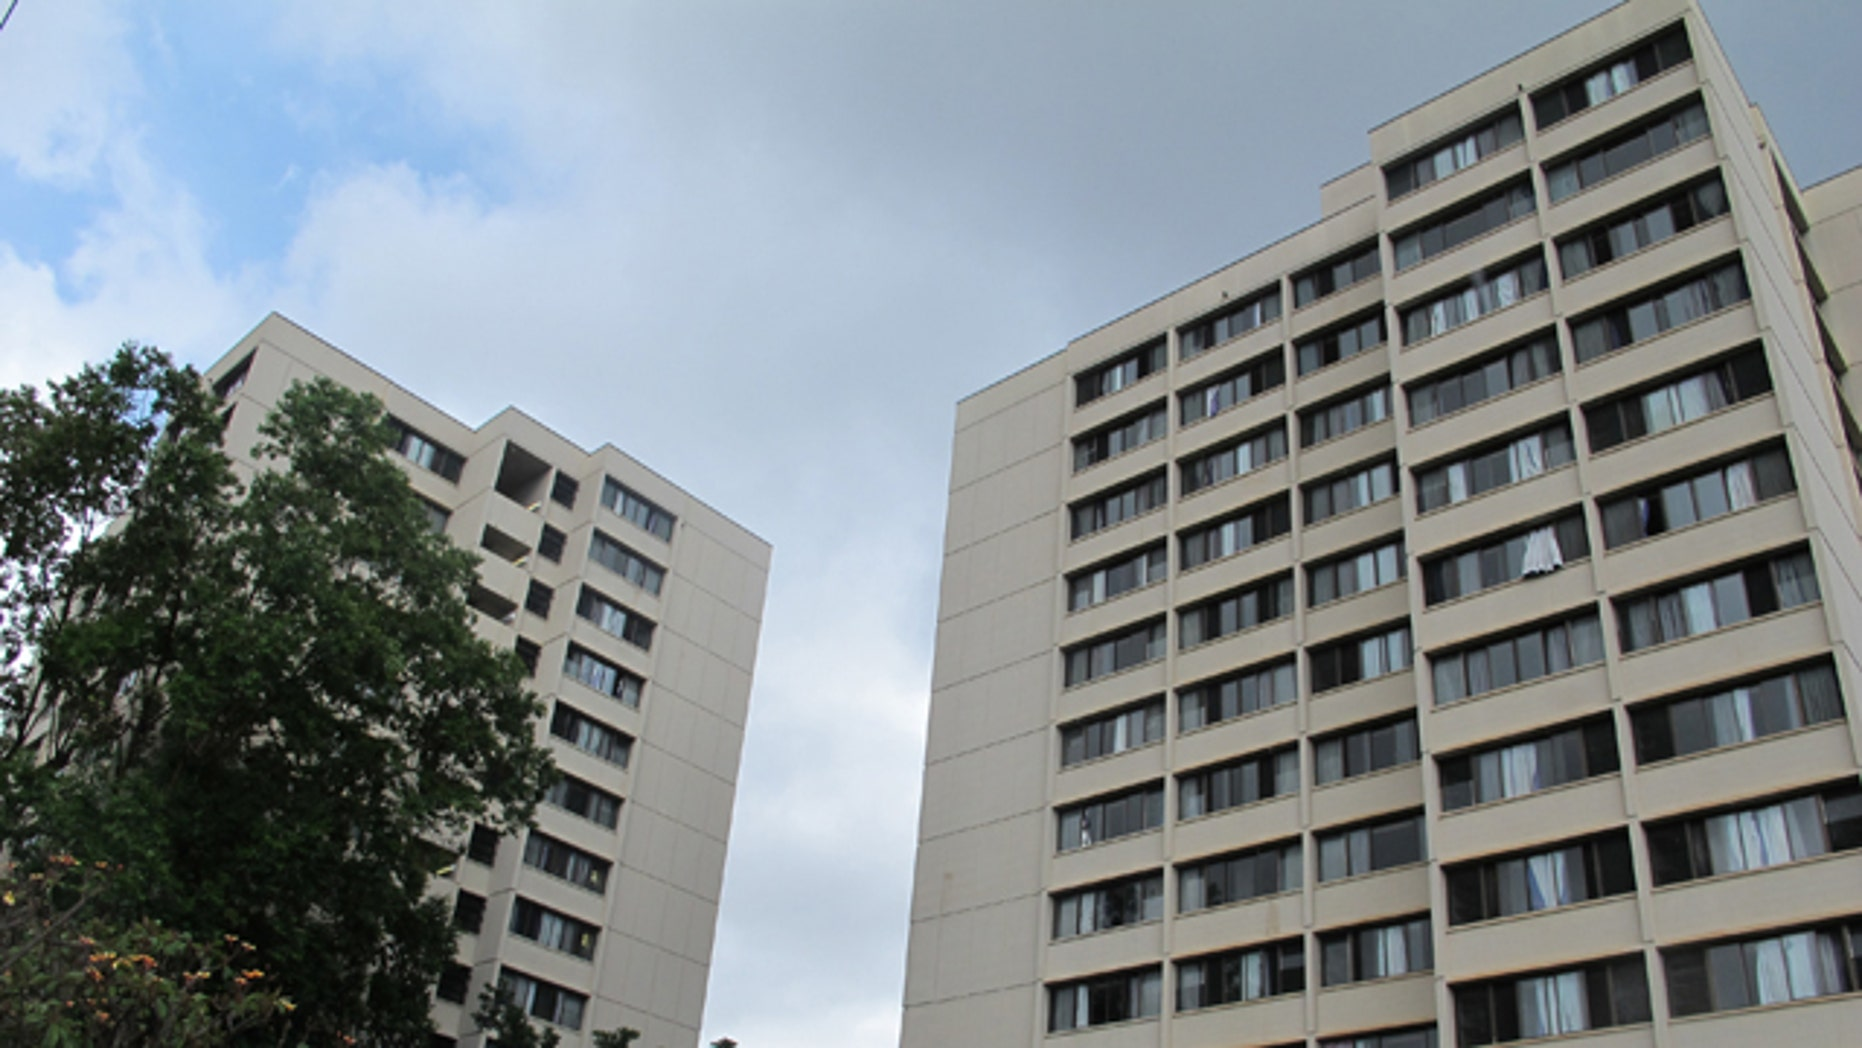 Aug. 17, 2015: The Hale Wainani dormitory is seen at the University of Hawaii in Honolulu. Two men fell from the 14th floor of the University of Hawaii dormitory, one of them to his death while trying to pull the other from a ledge, Honolulu police said. (AP Photo/Jennifer Sinco Kelleher)